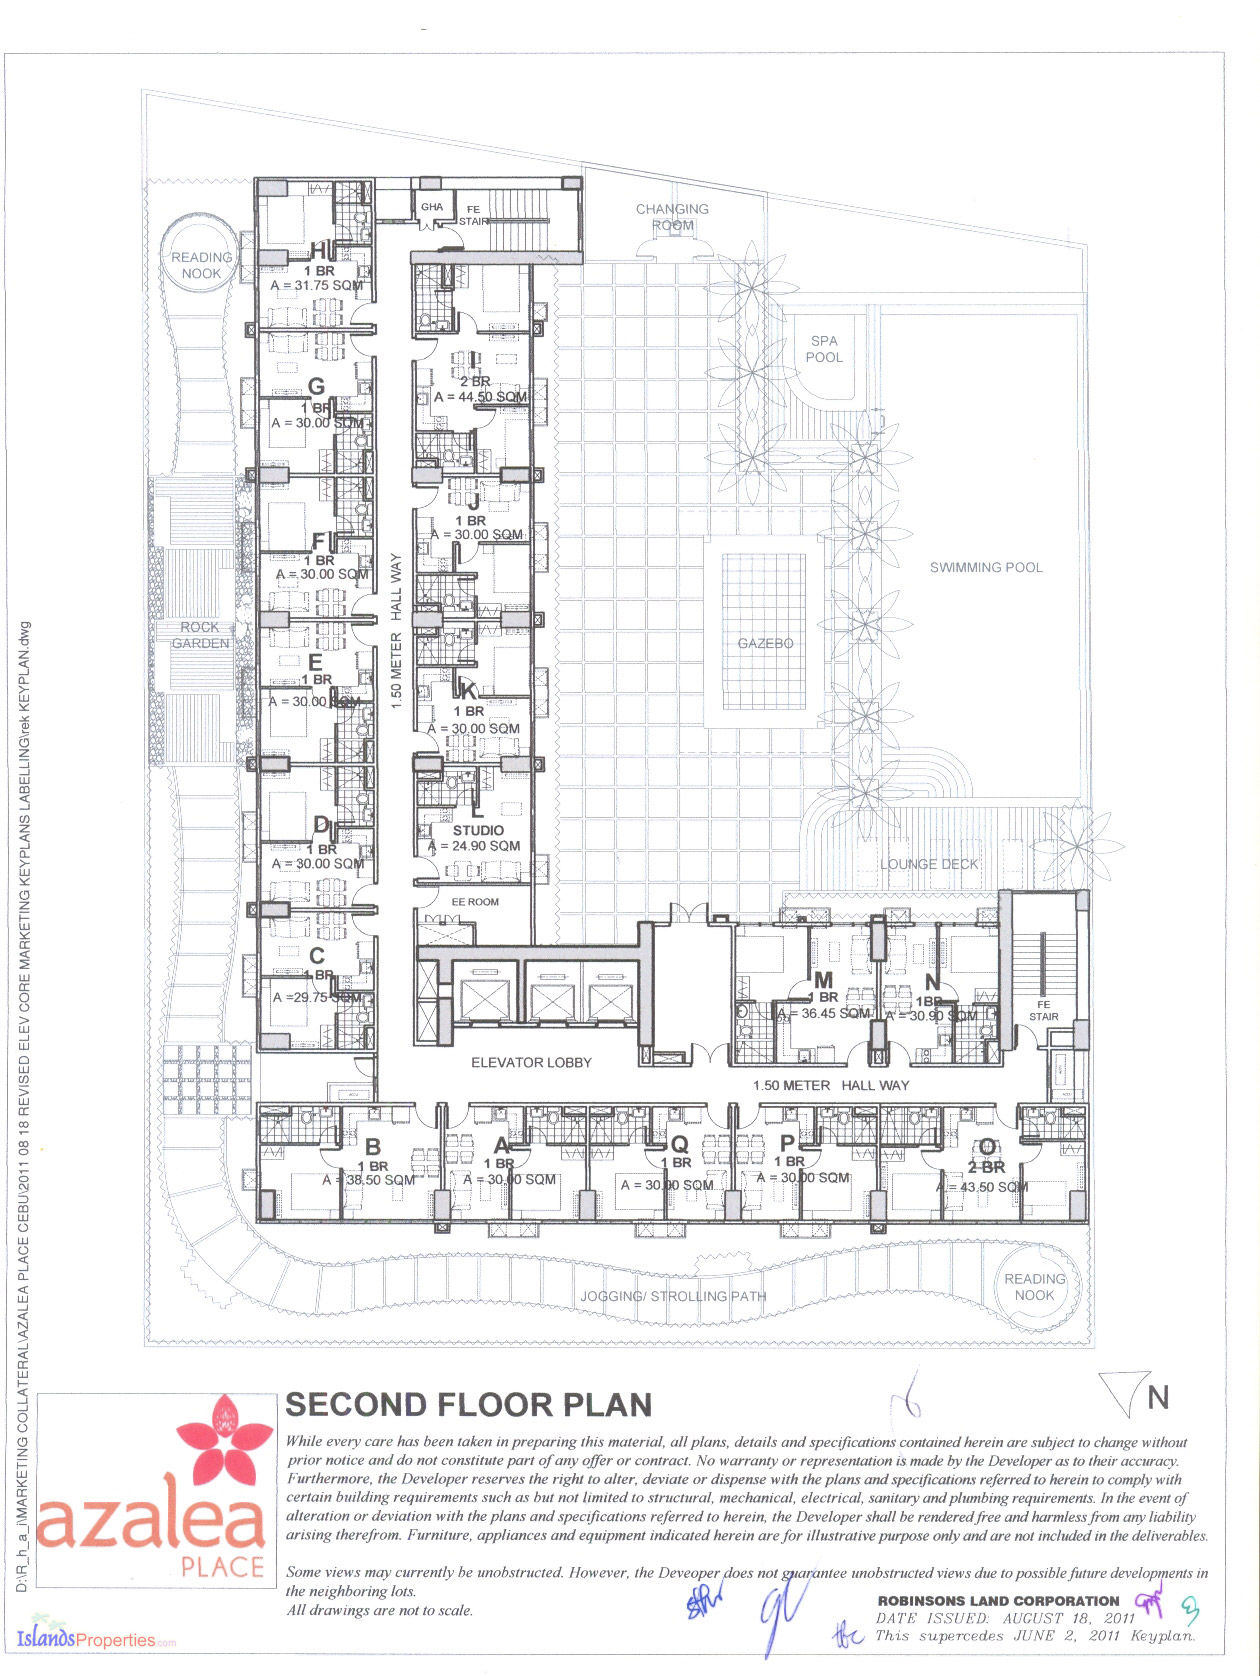 View Second Floor Plan